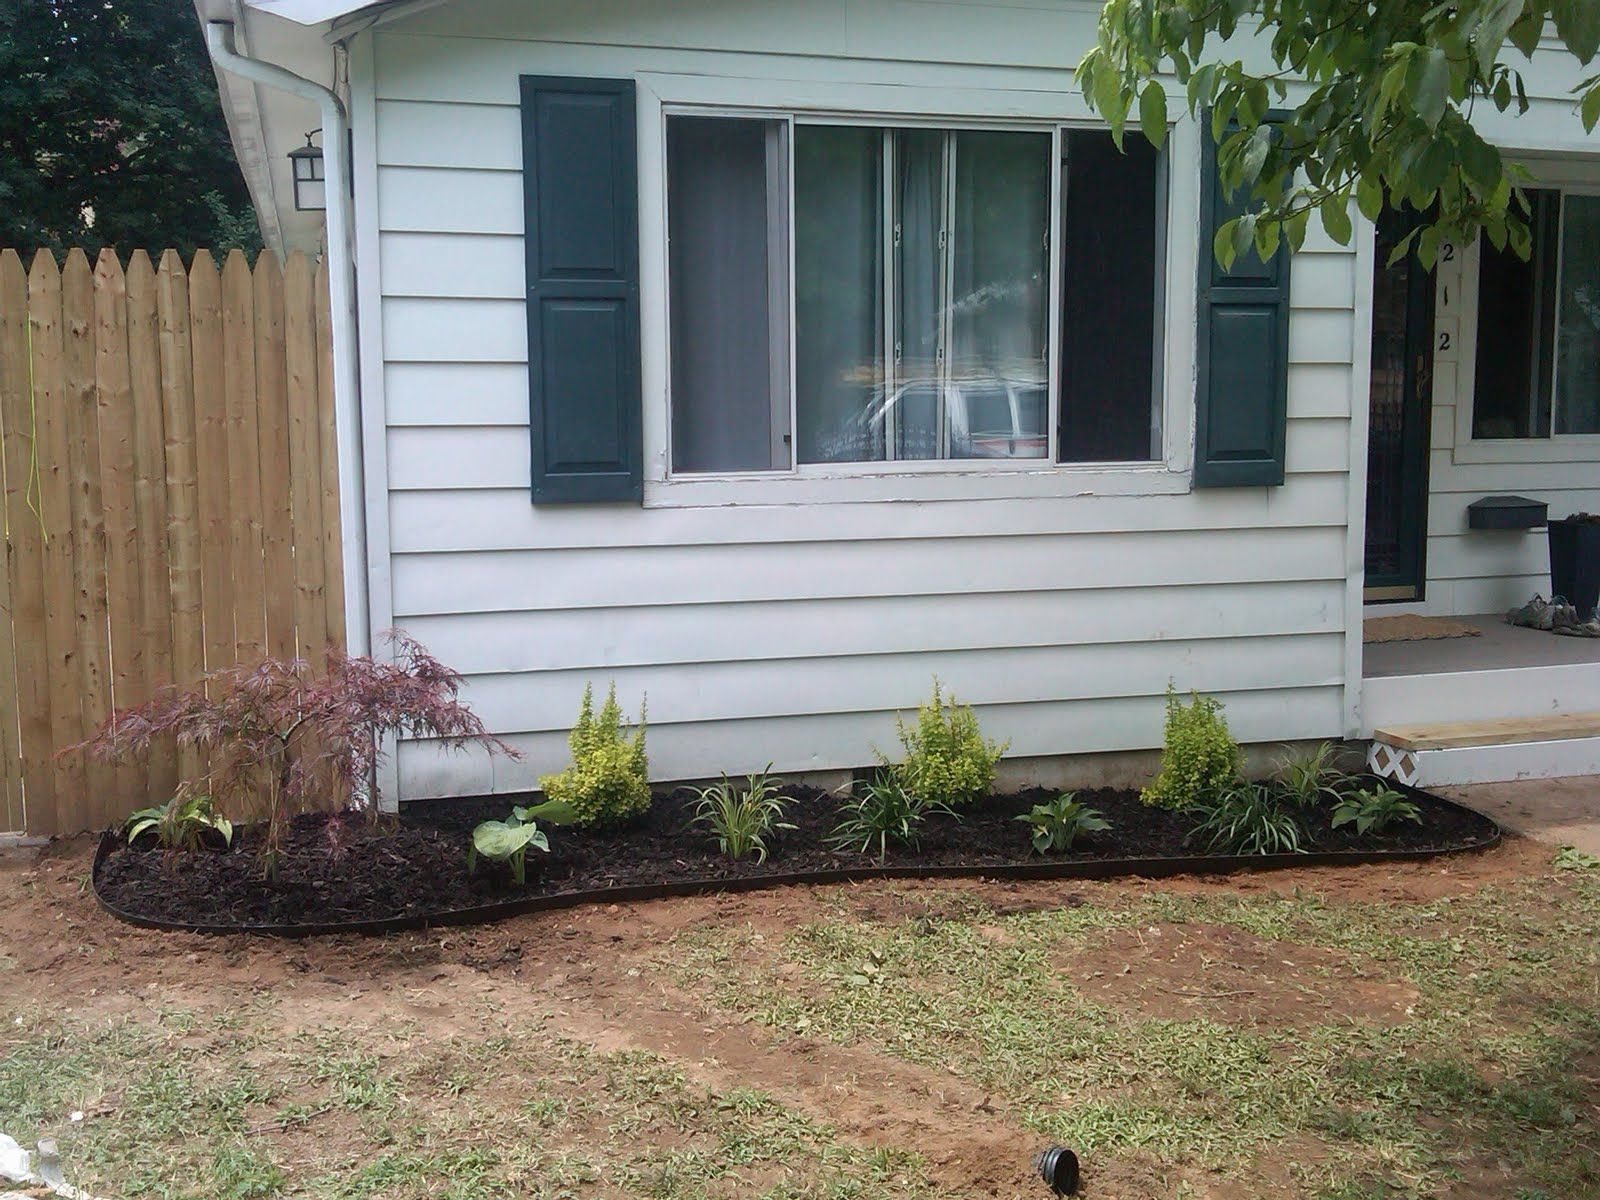 Landscaping ideas for front yard of a ranch style house - House Landscaping Ideas For Front Yard